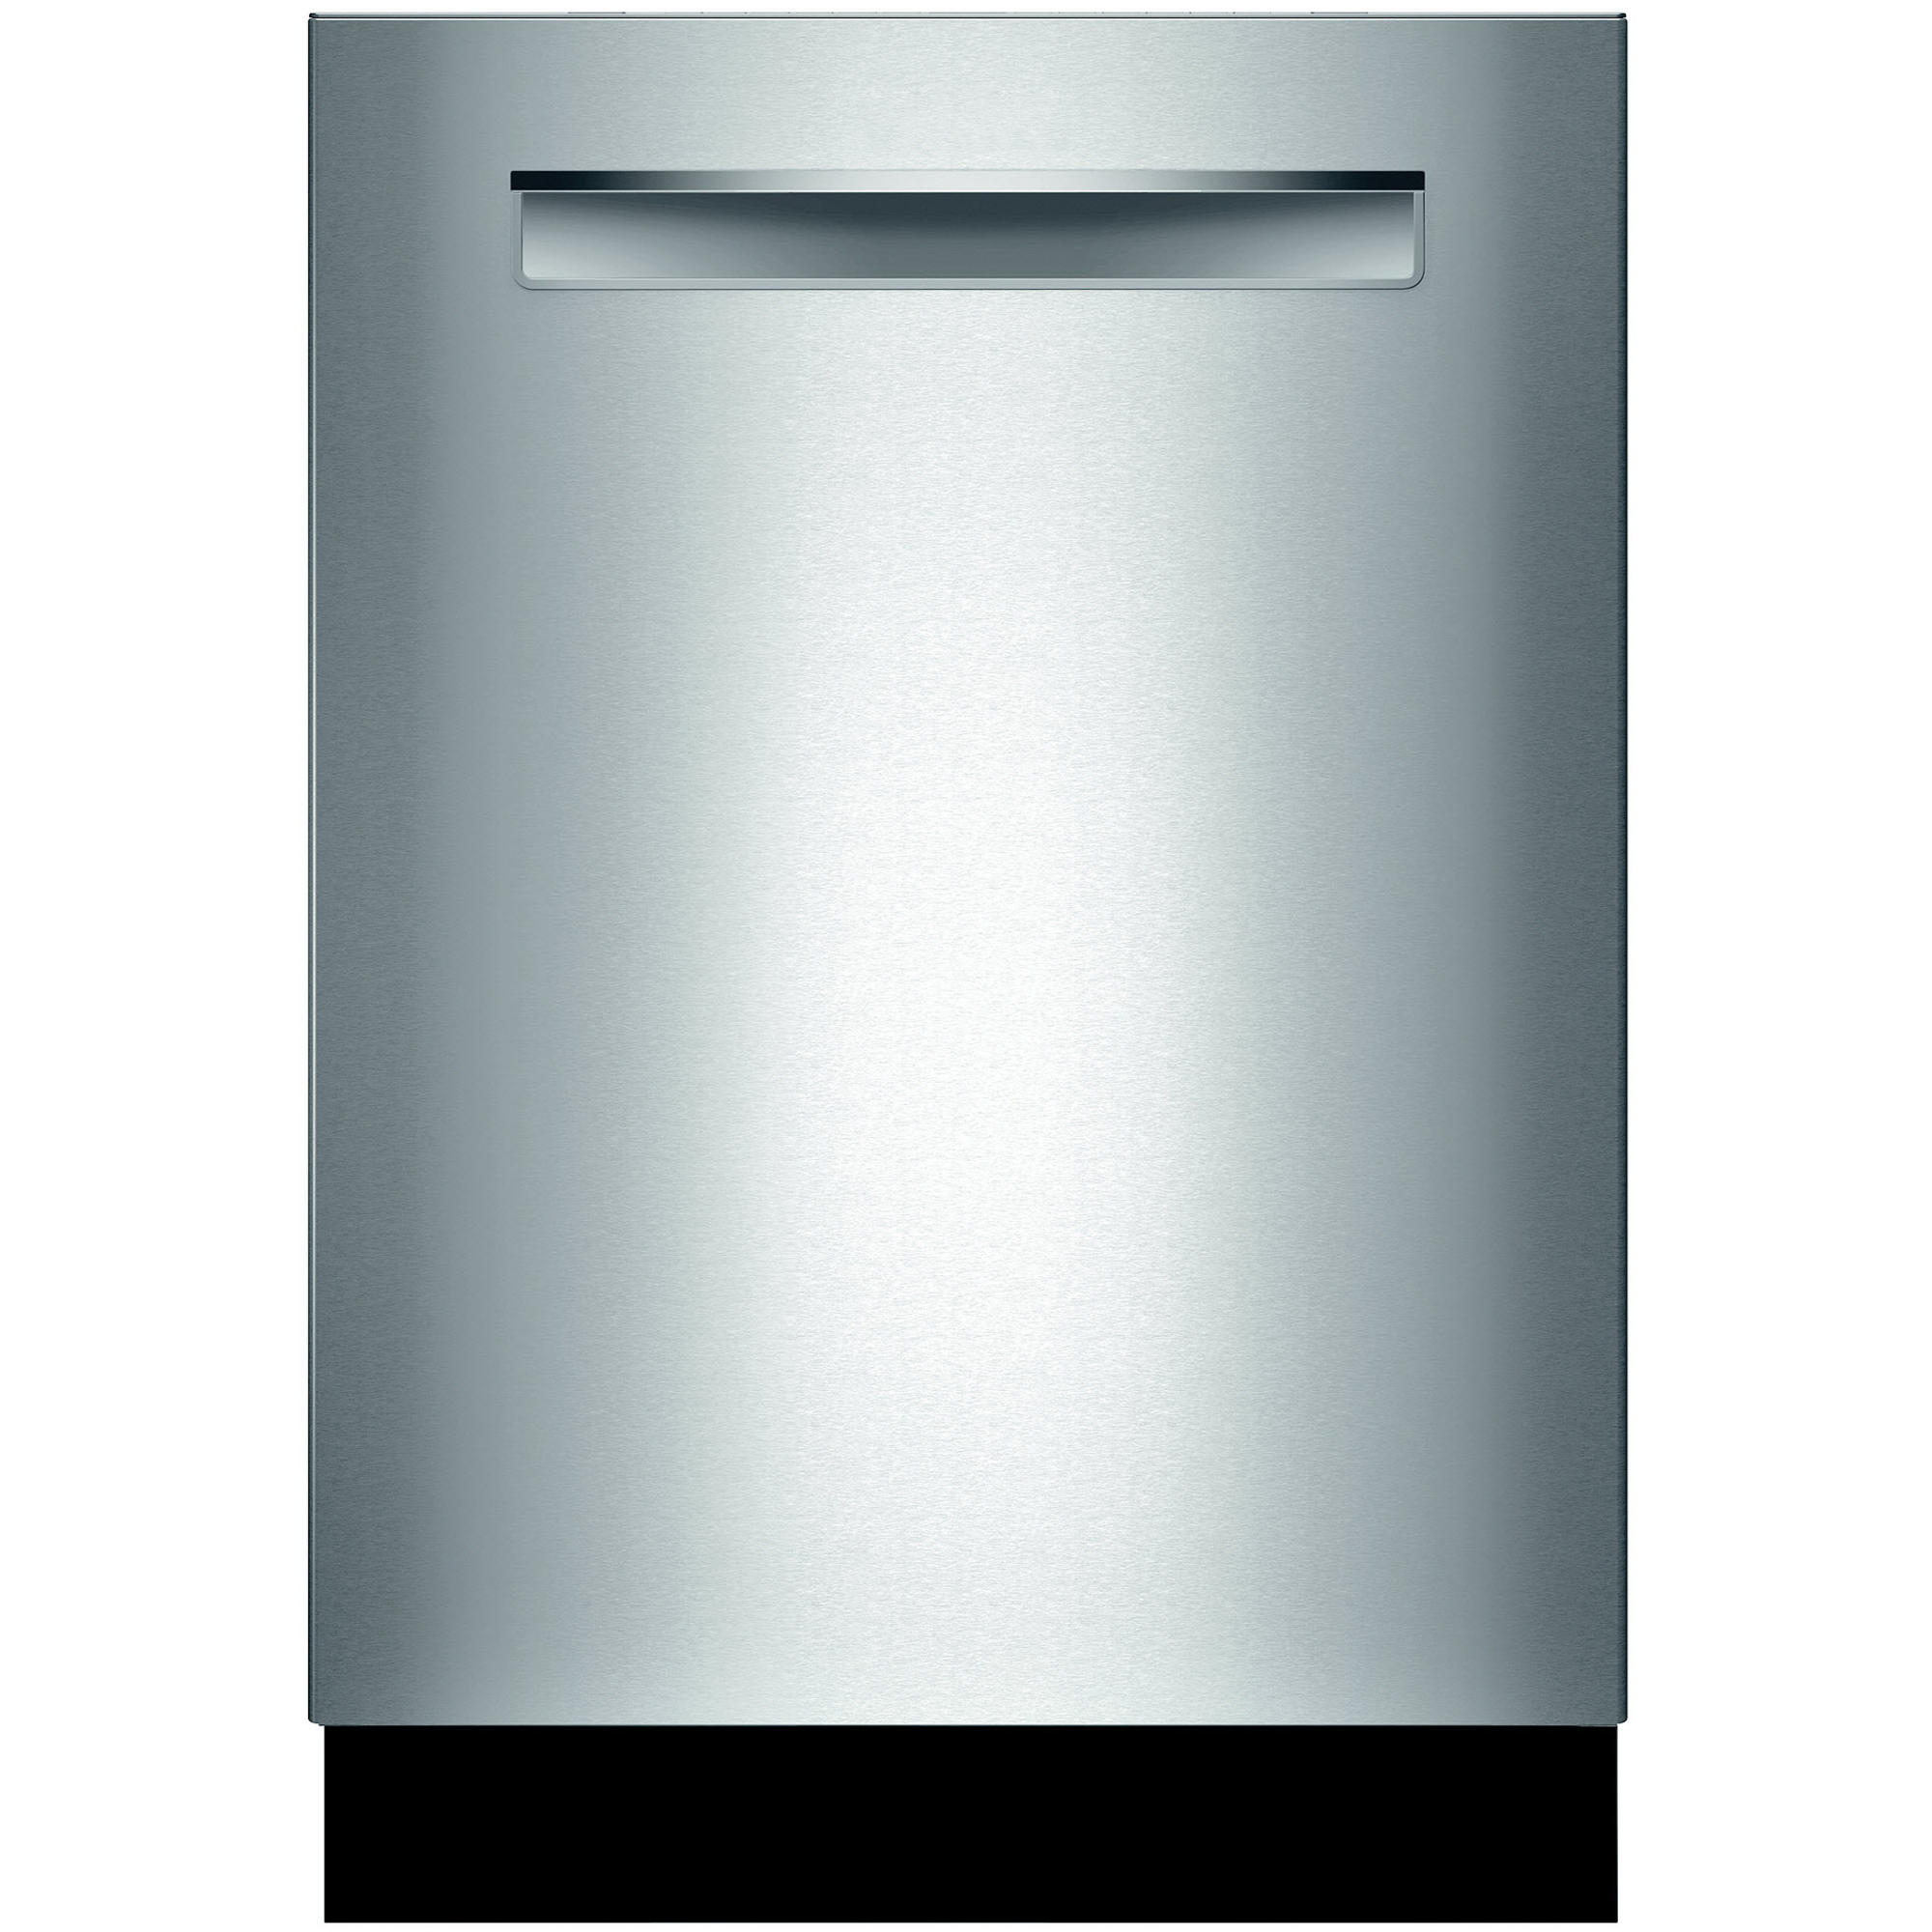 "Bosch SHP53T55UC 24"""" 300 Series Built-In Dishwasher - Stainless Steel"